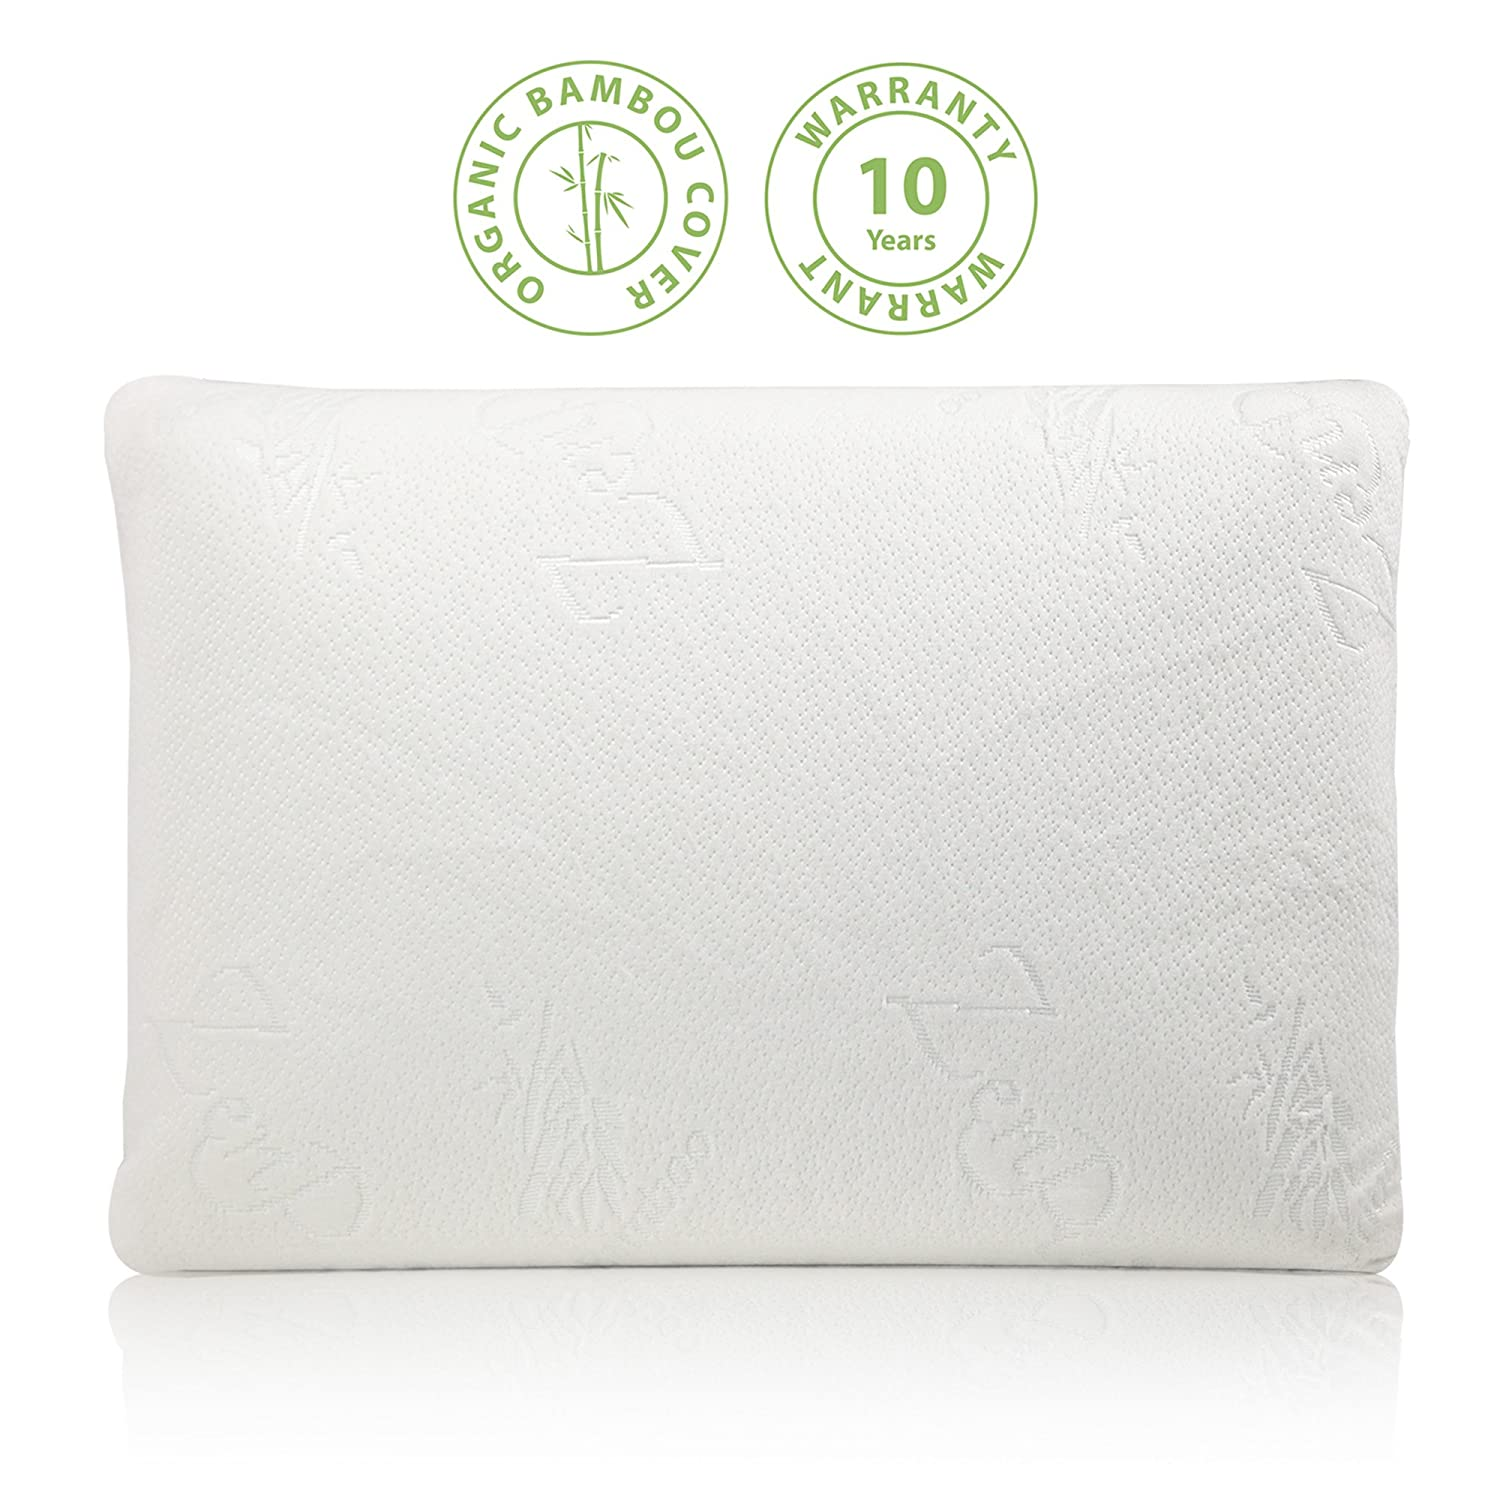 ZenPur® Premium Organic Bamboo Memory Foam Pillow — Contour Design Relieves Back and Neck Pain — Hypoallergenic Washable Cover — Ideal for Front, Back & Side Sleepers — Eco — 40x60cm DESIGNBYKDOCHIC